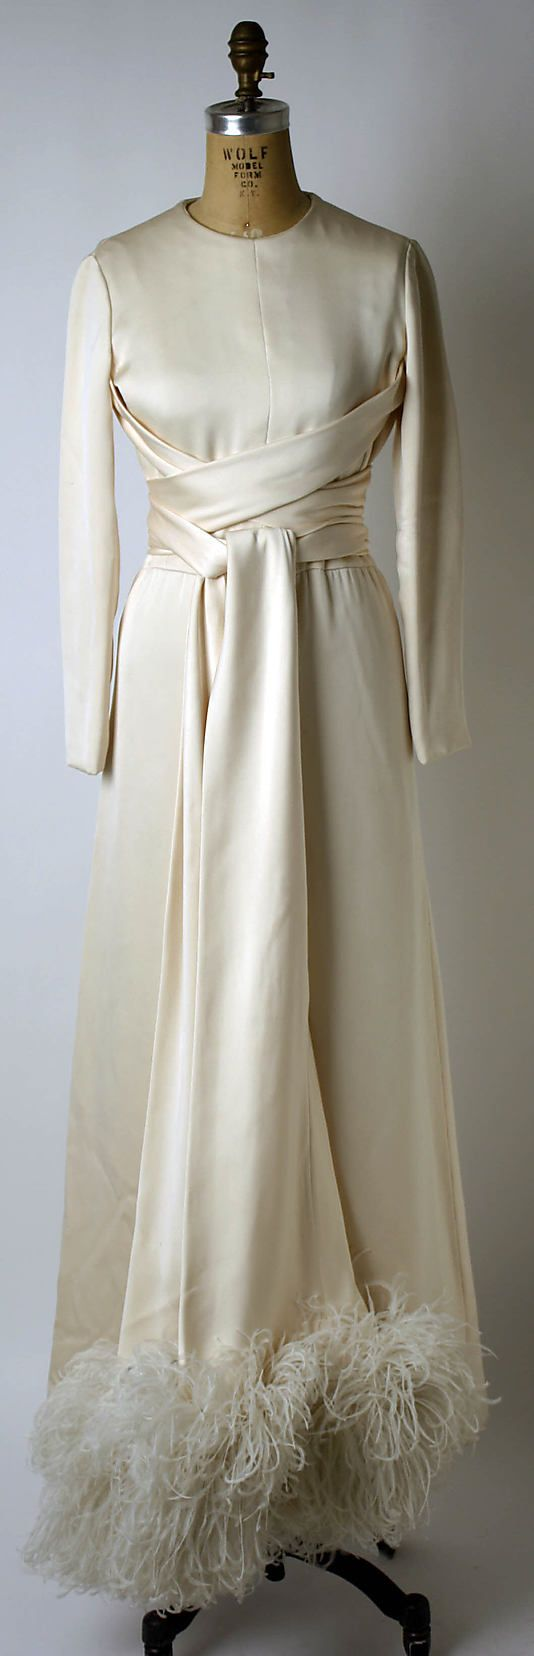 Valentino Dress - late 1960's - by Valentino (Italian, born 1932) - Silk…